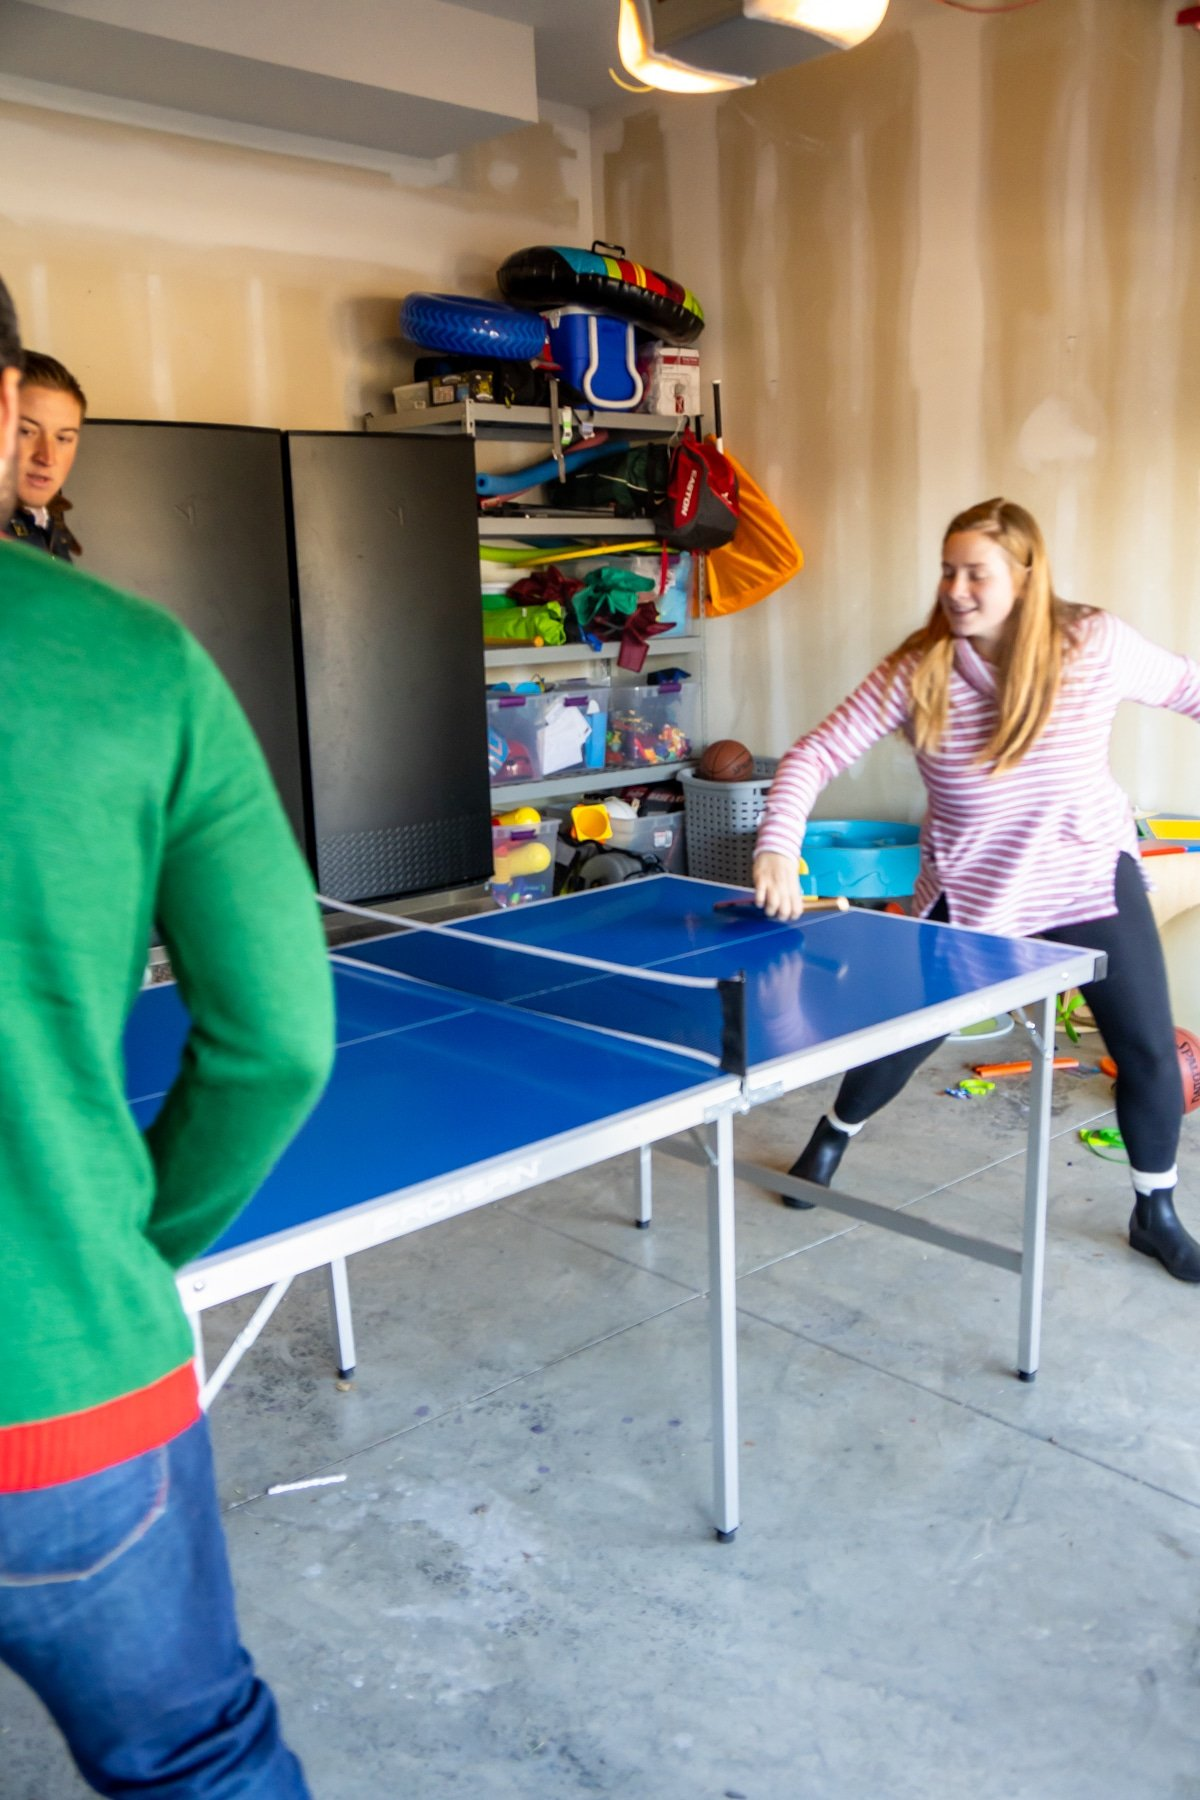 Family standing around a ping pong table